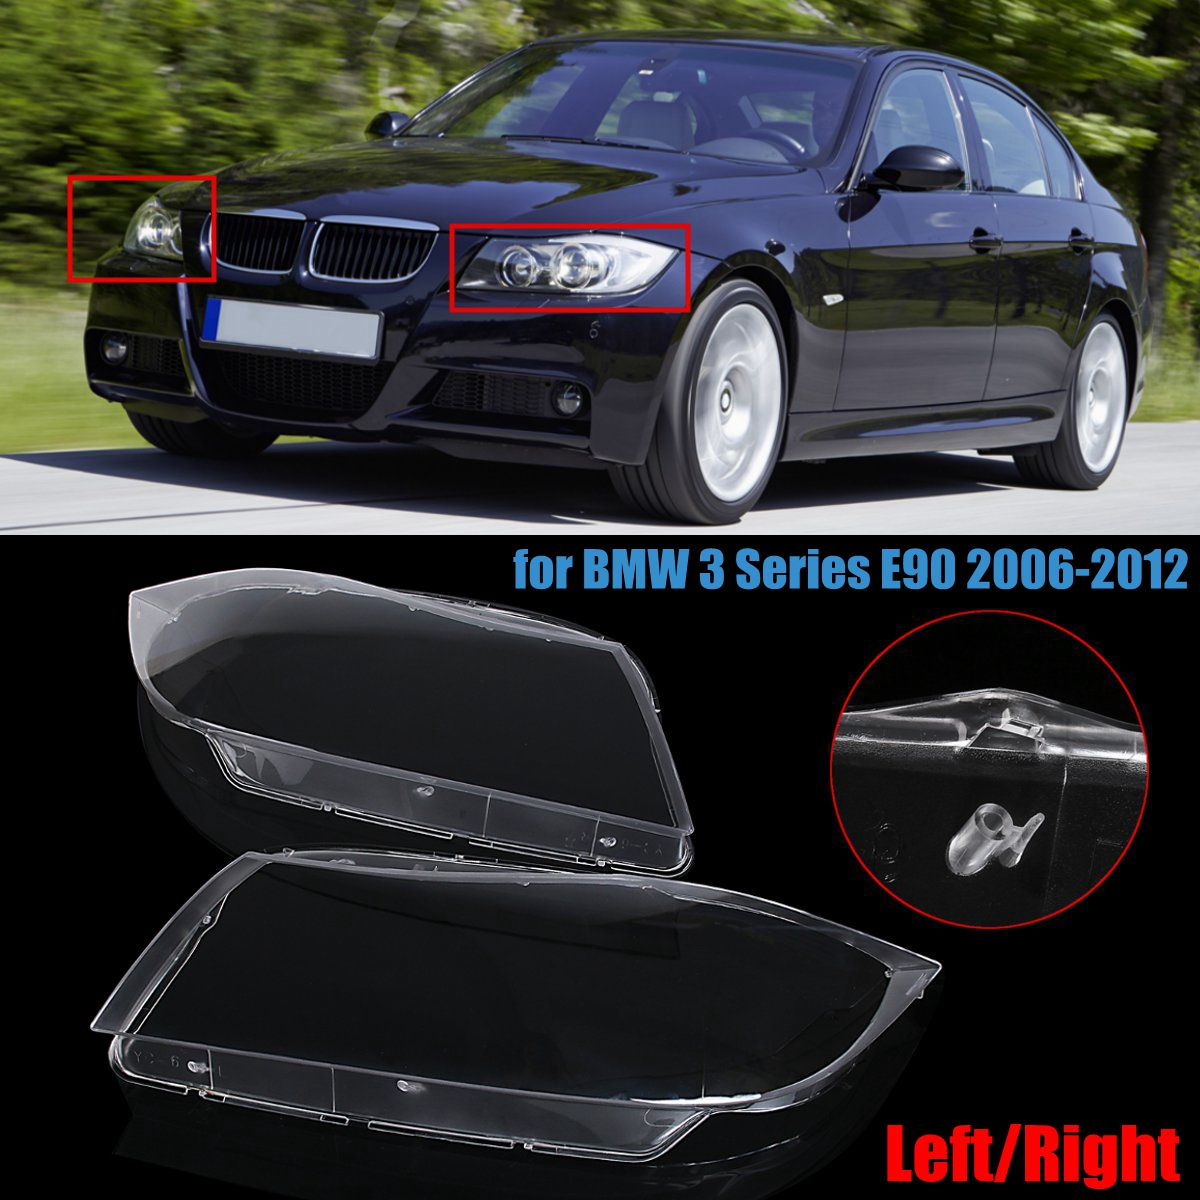 Car Headlight Lamp Lens Shell Clear Cover Left/Right for BMW 3 Series E90 2006-2012